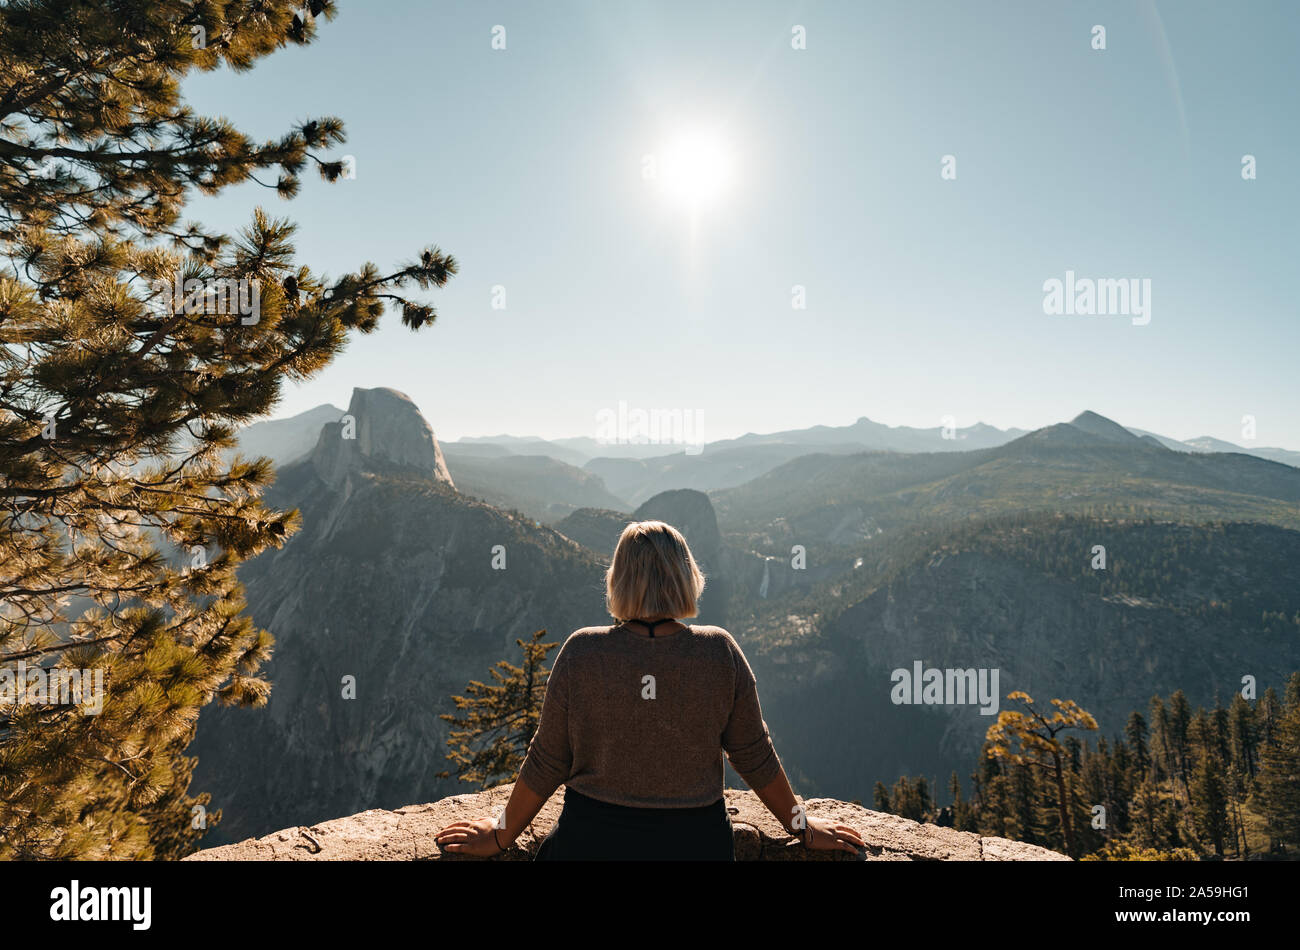 Yosemite Valley View with Half Dome and Waterfalls in the Background Stock Photo